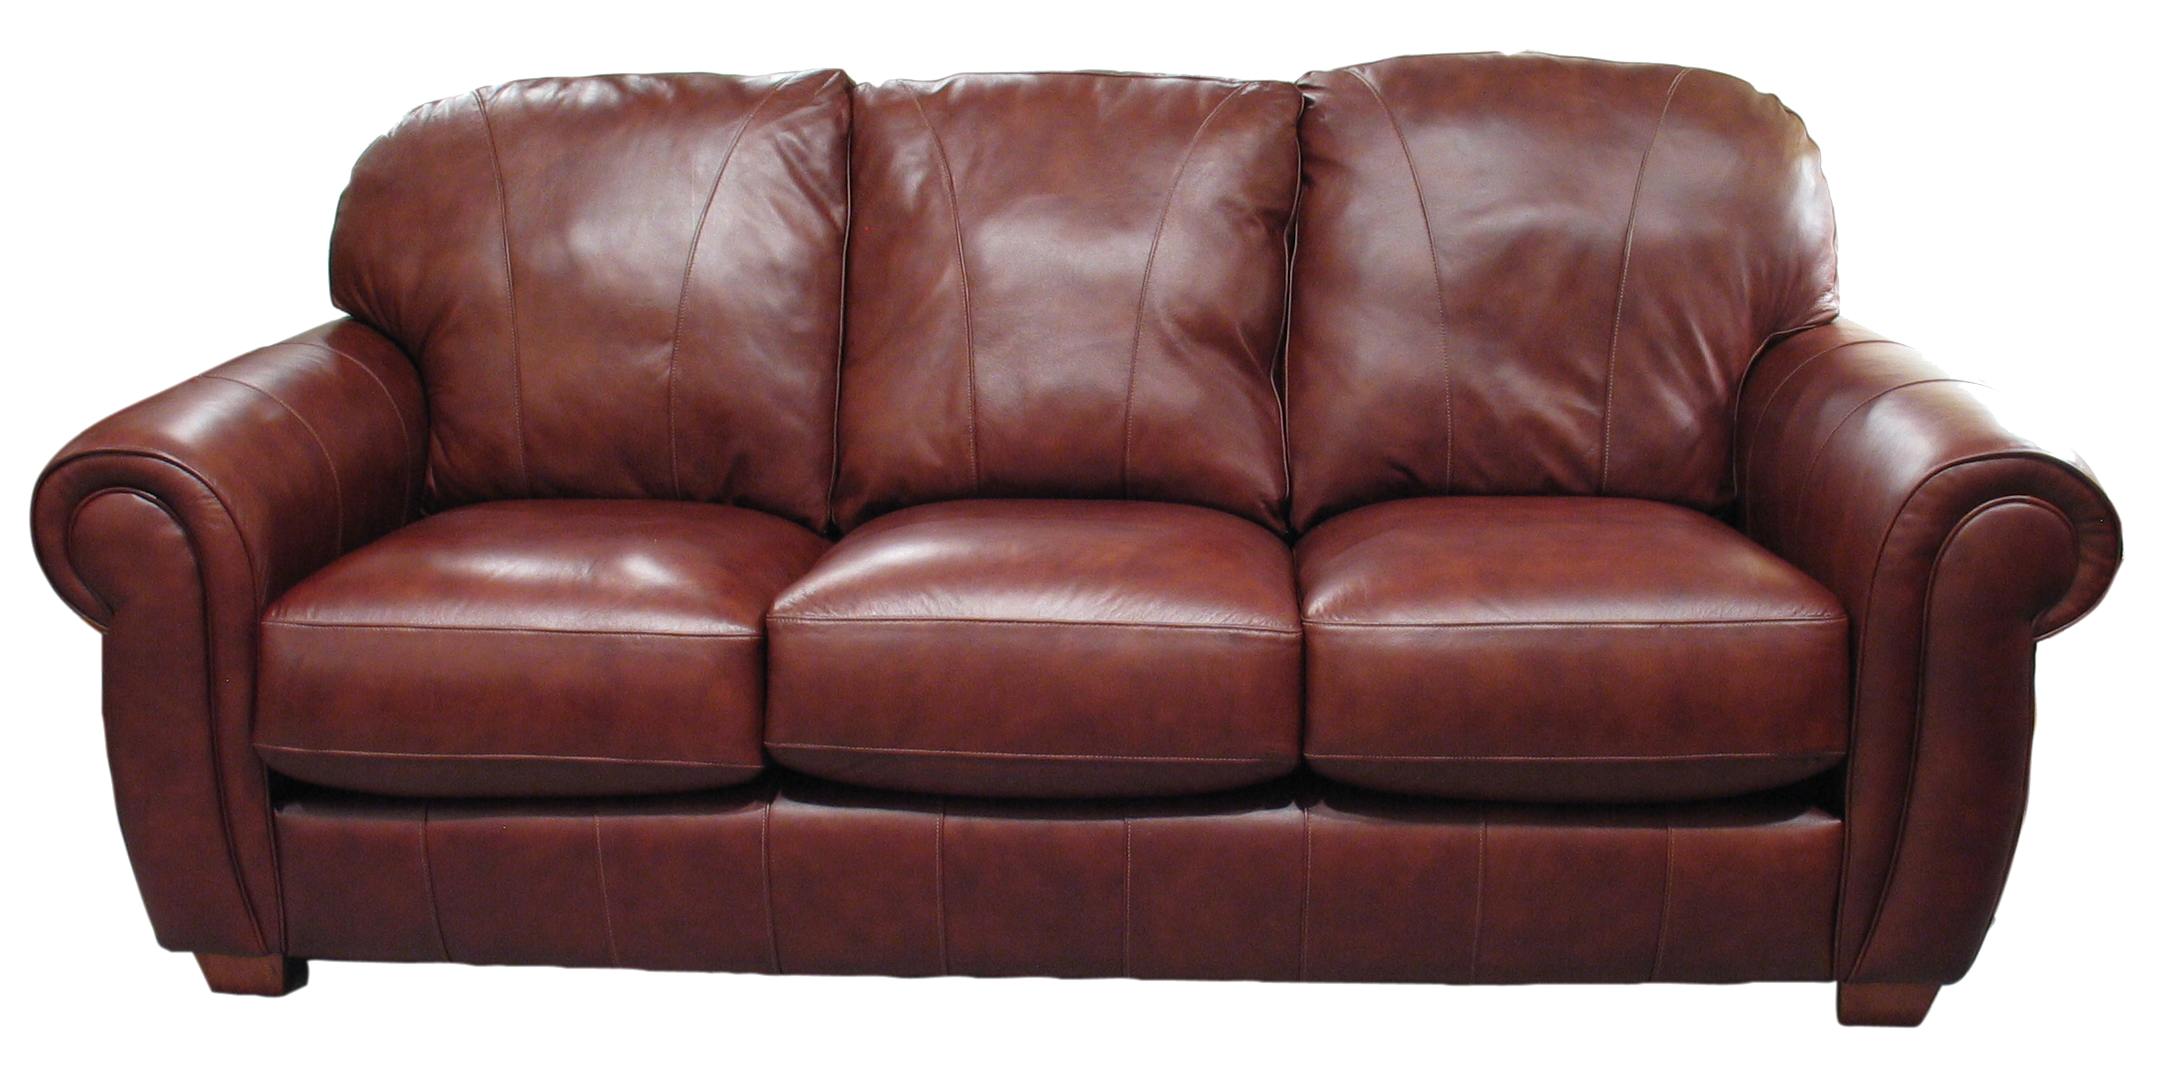 Sofa transparent brown. Png image purepng free